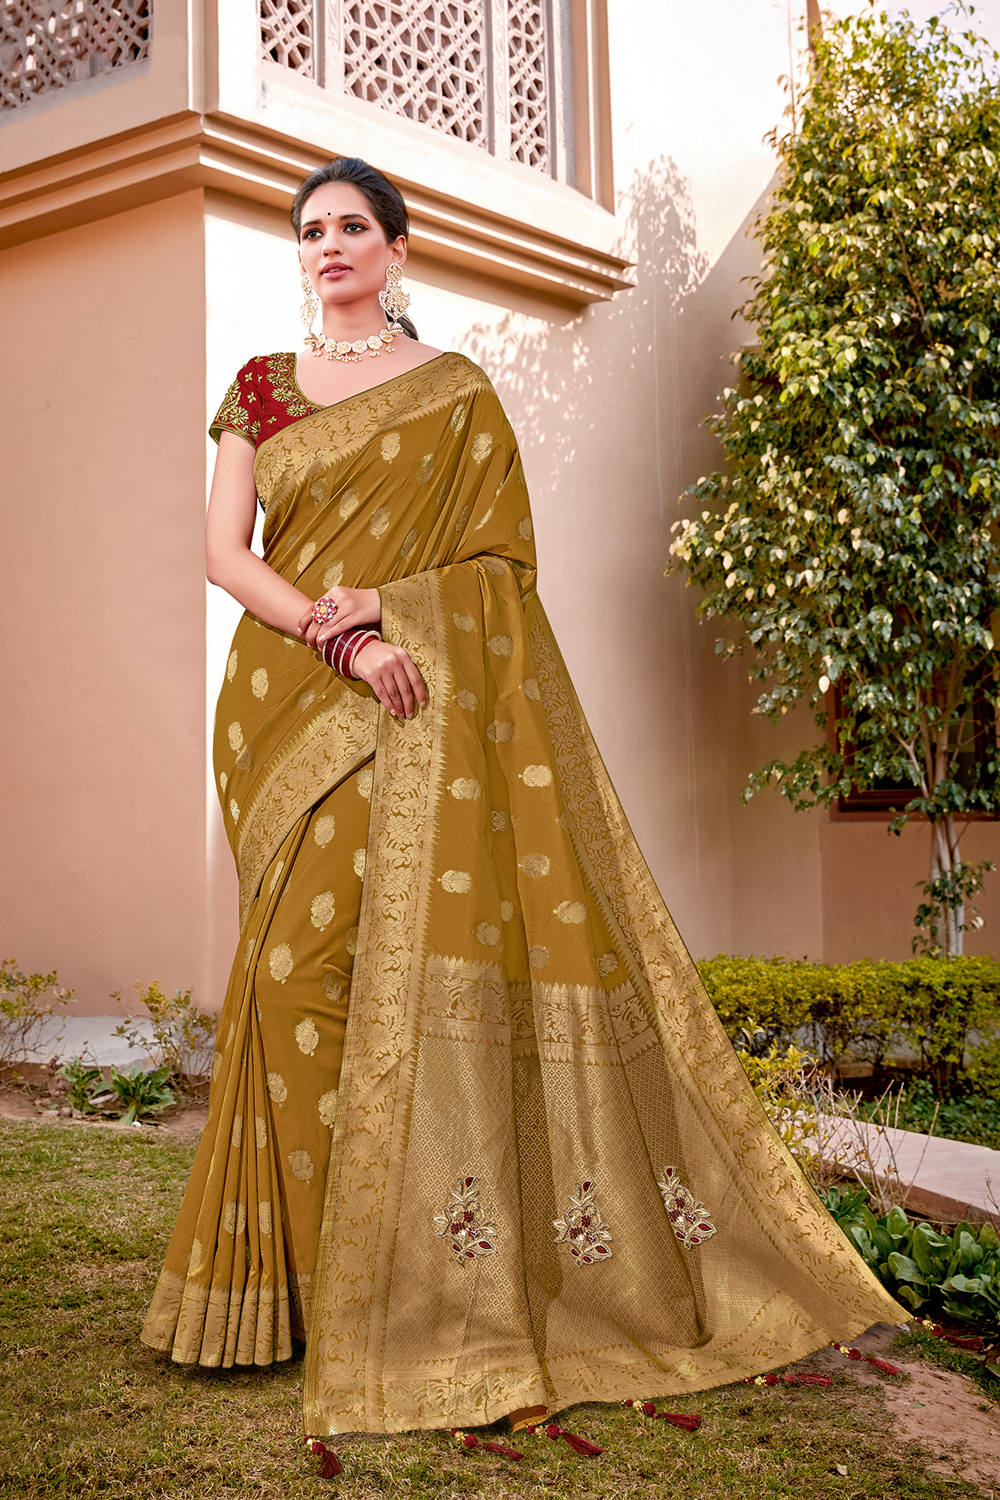 A muted and refined silk saree